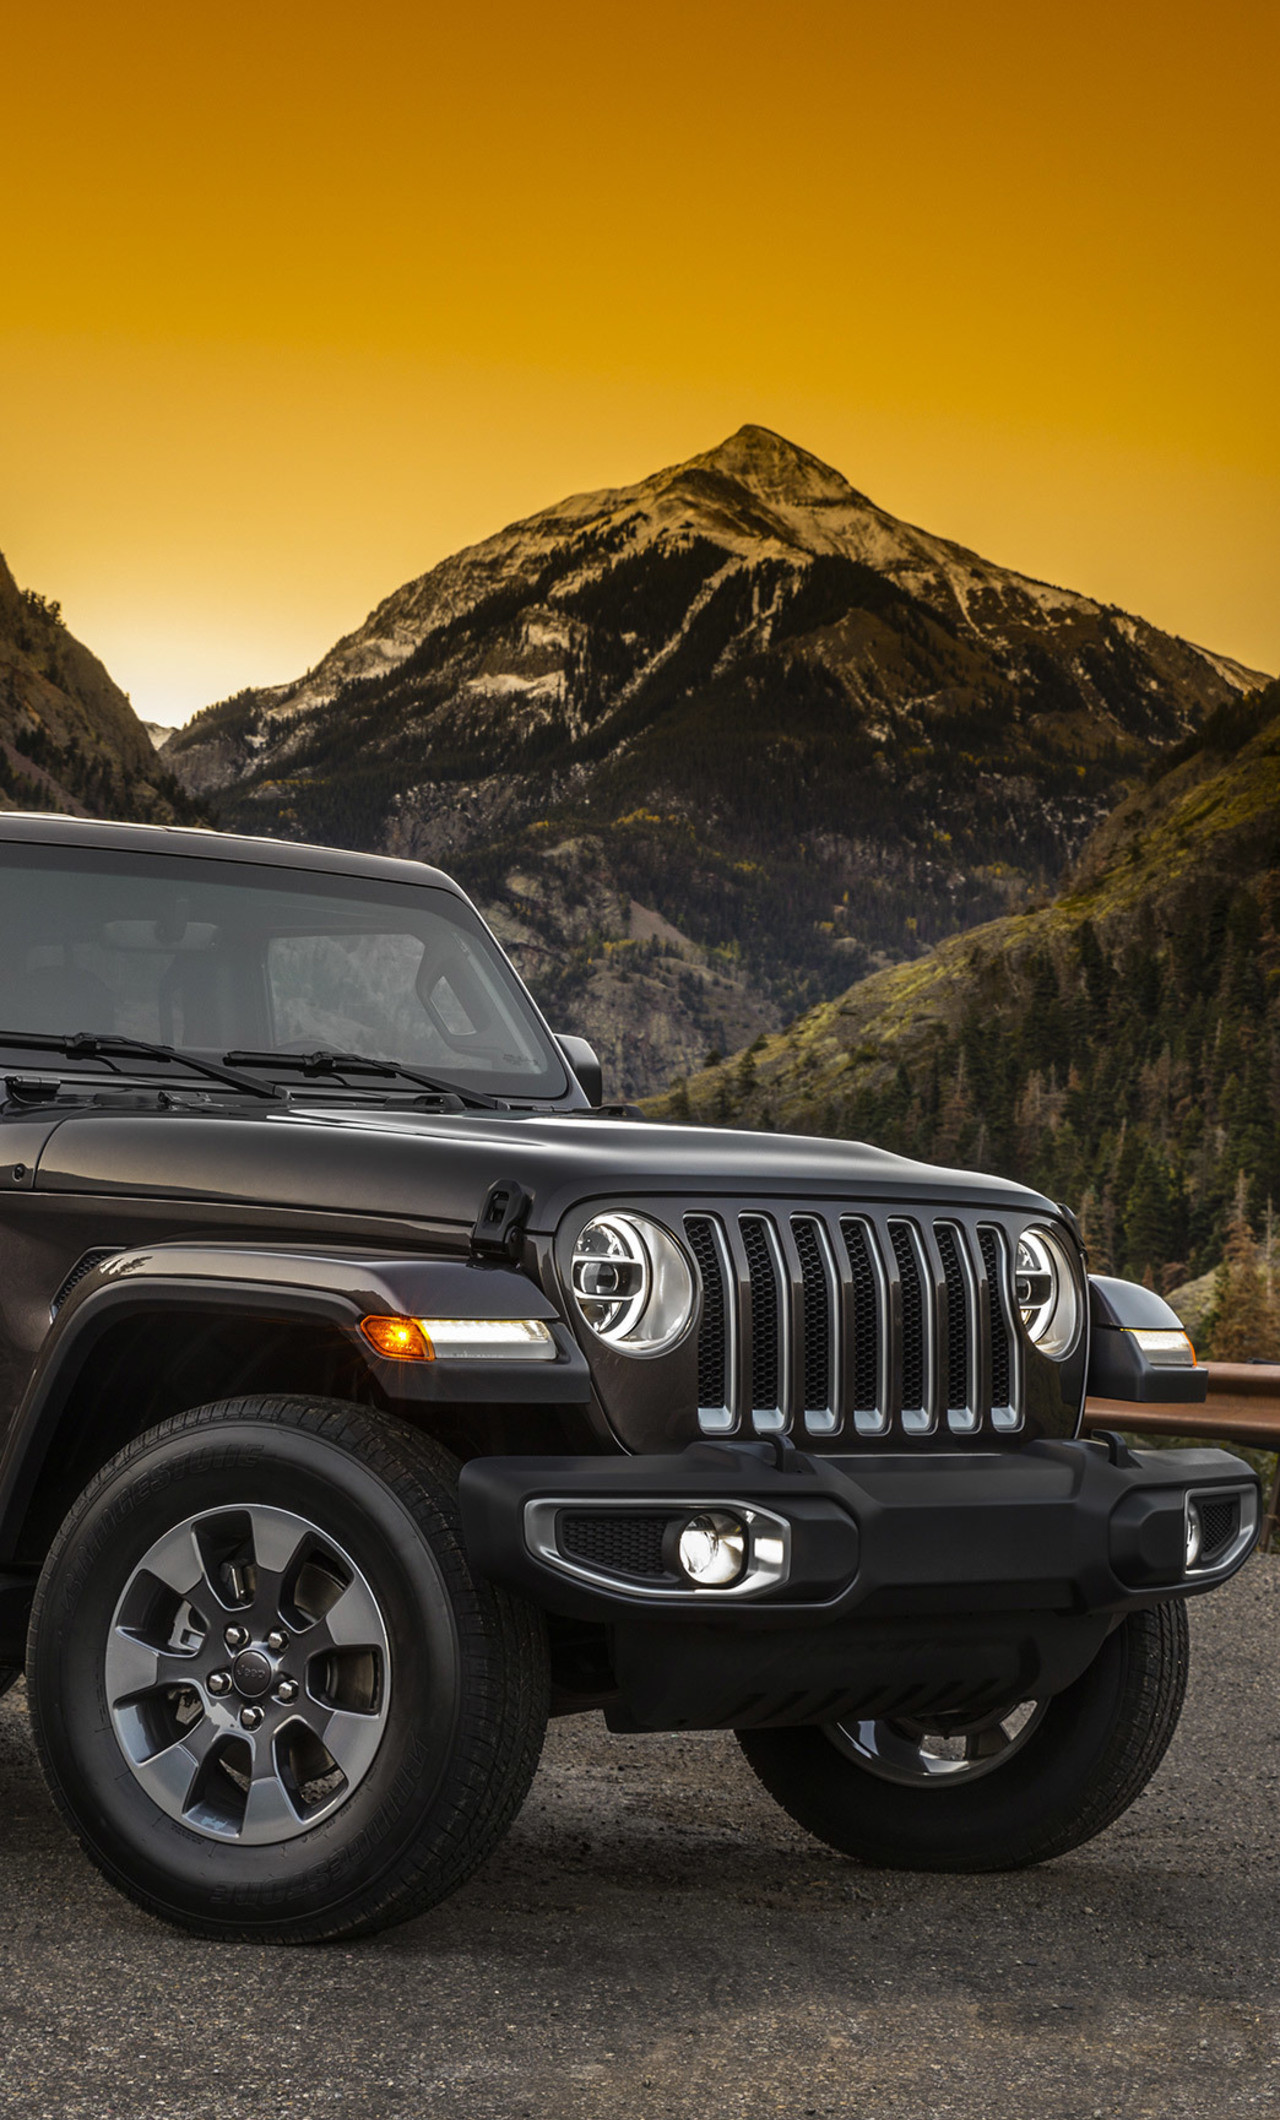 Res: 1280x2120, 2018-jeep-wrangler-unlimited-rubicon-eb.jpg